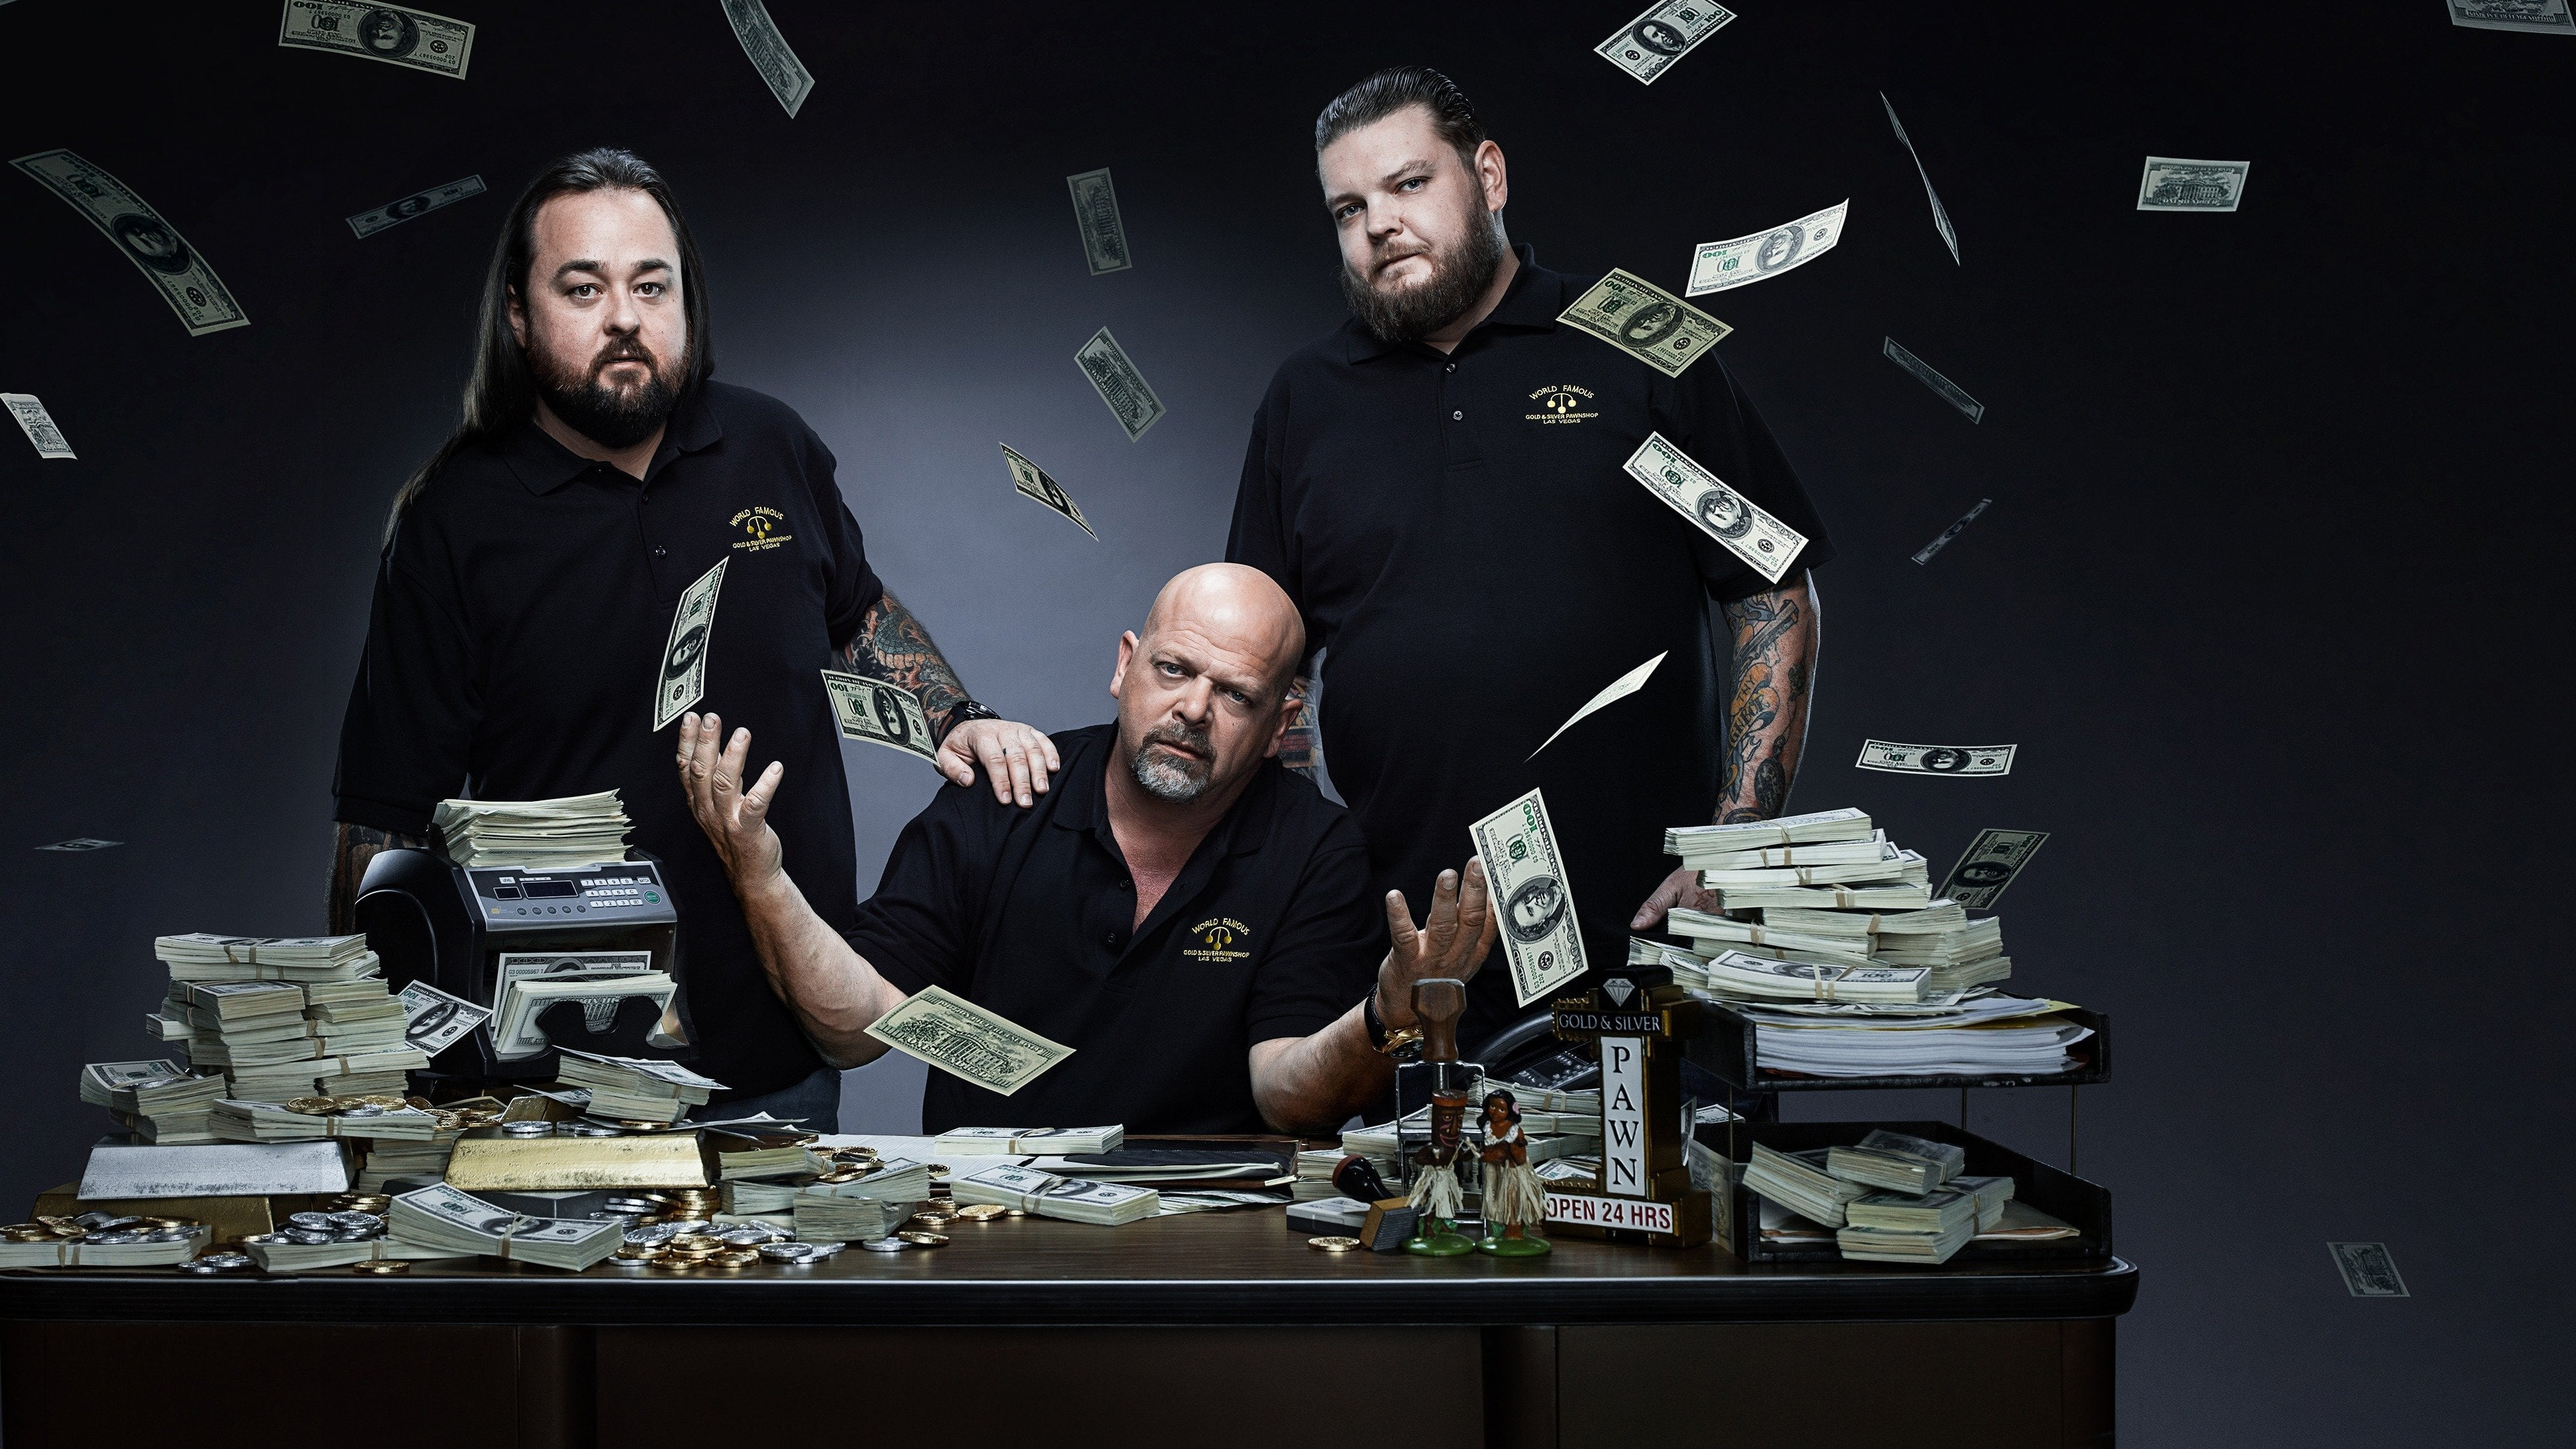 Pawn Stars - Season 5 Episode 7 : $=MC2